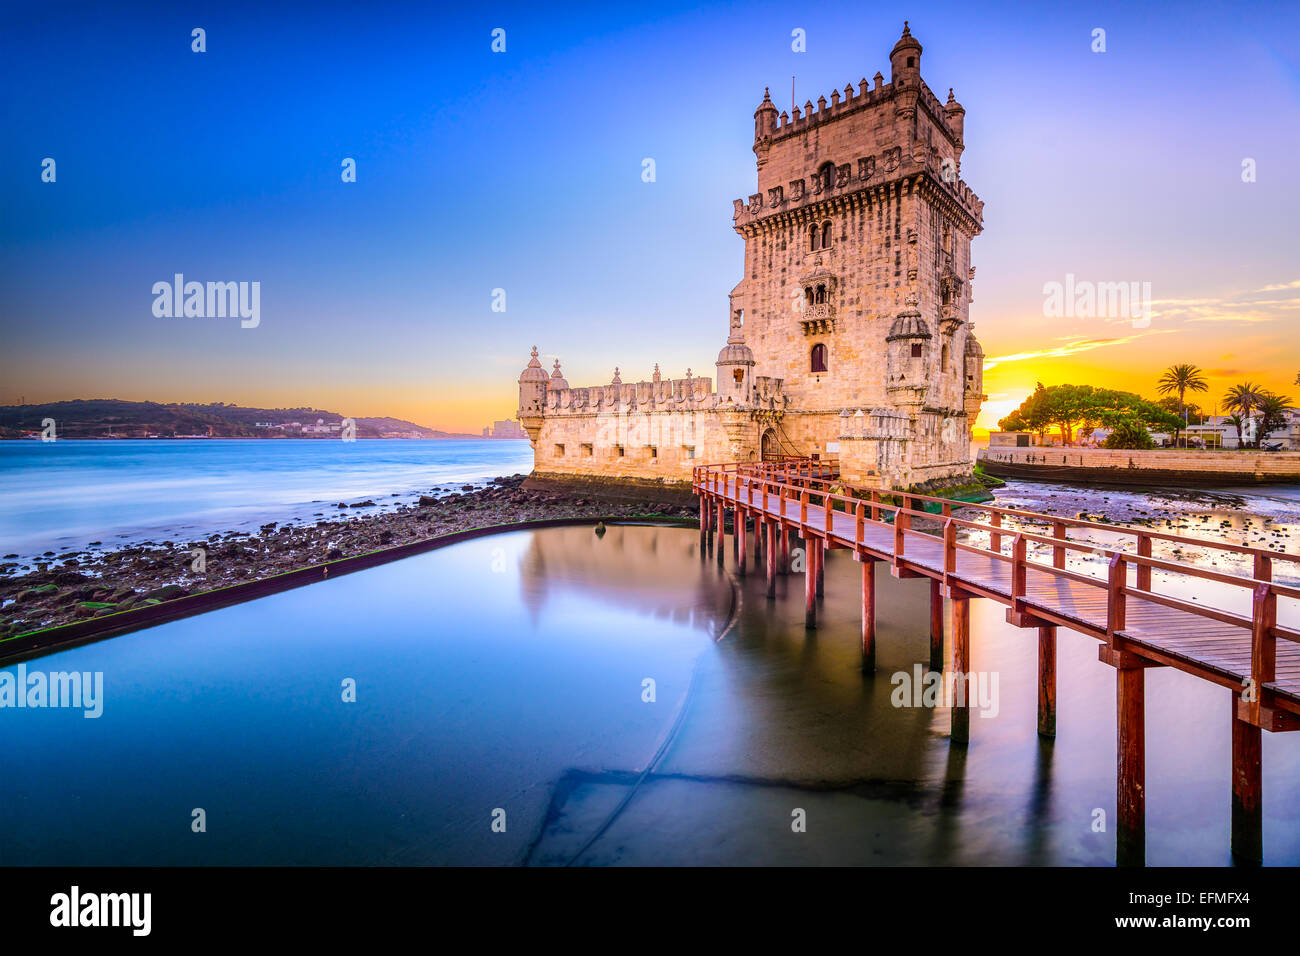 Lisbon, Portugal at Belem Tower on the Tagus River. - Stock Image